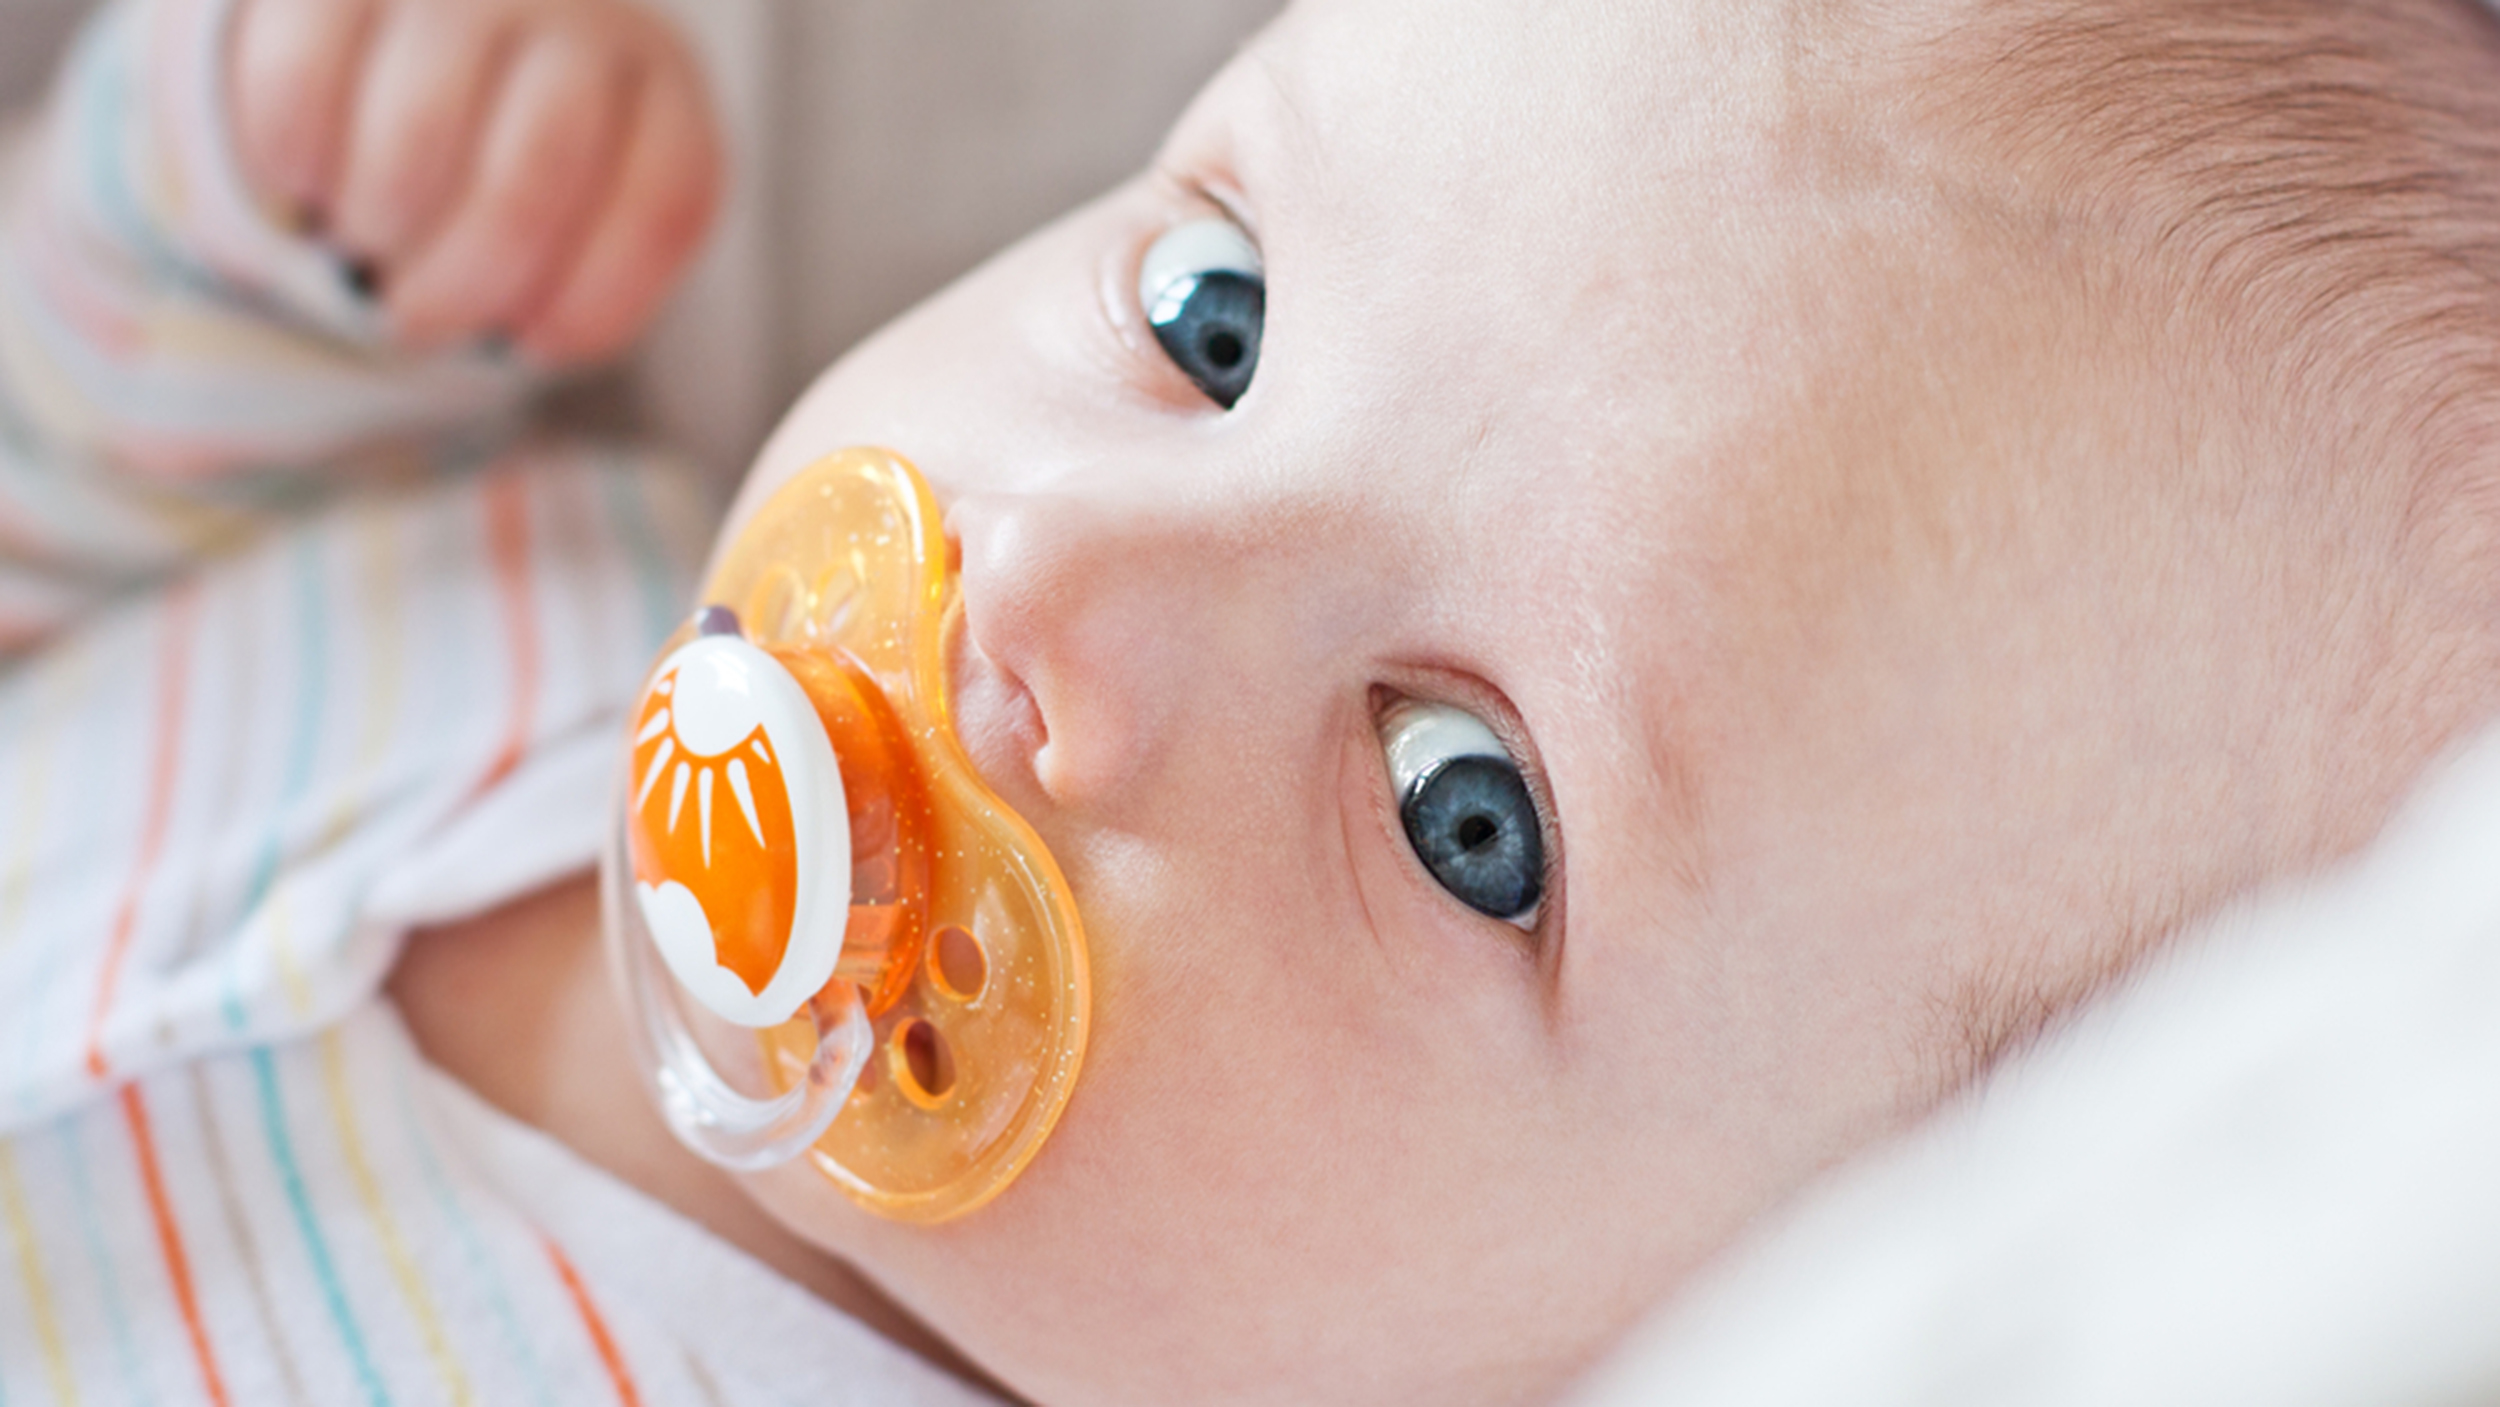 Global Pacifier Market 2019 by Opportunities, Challenges, Risks and Factors